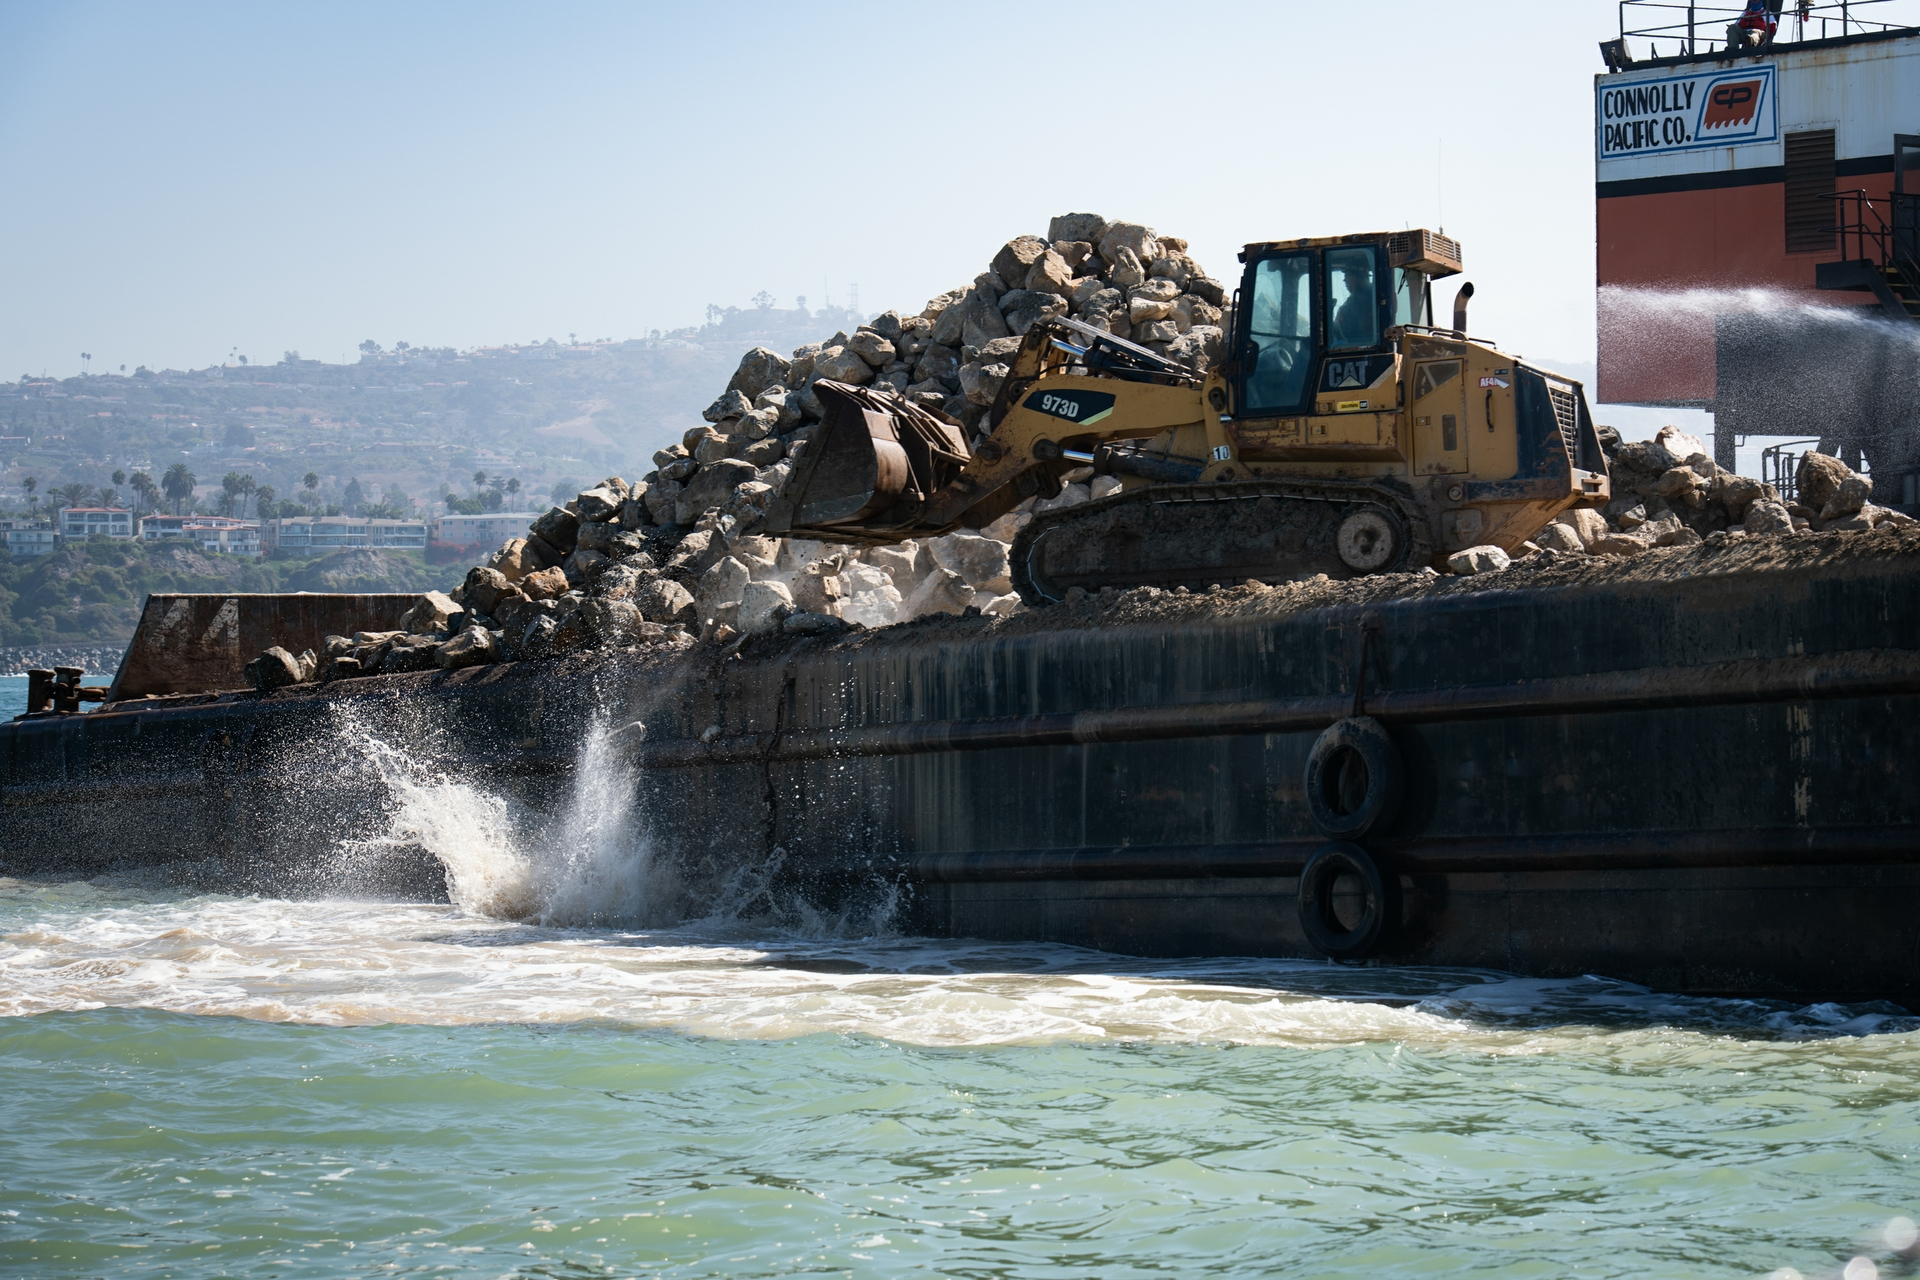 A large crane is used to pick up and drop organic quarry rocks into 38 feet of water for the expansion of the Wheeler North Reef.